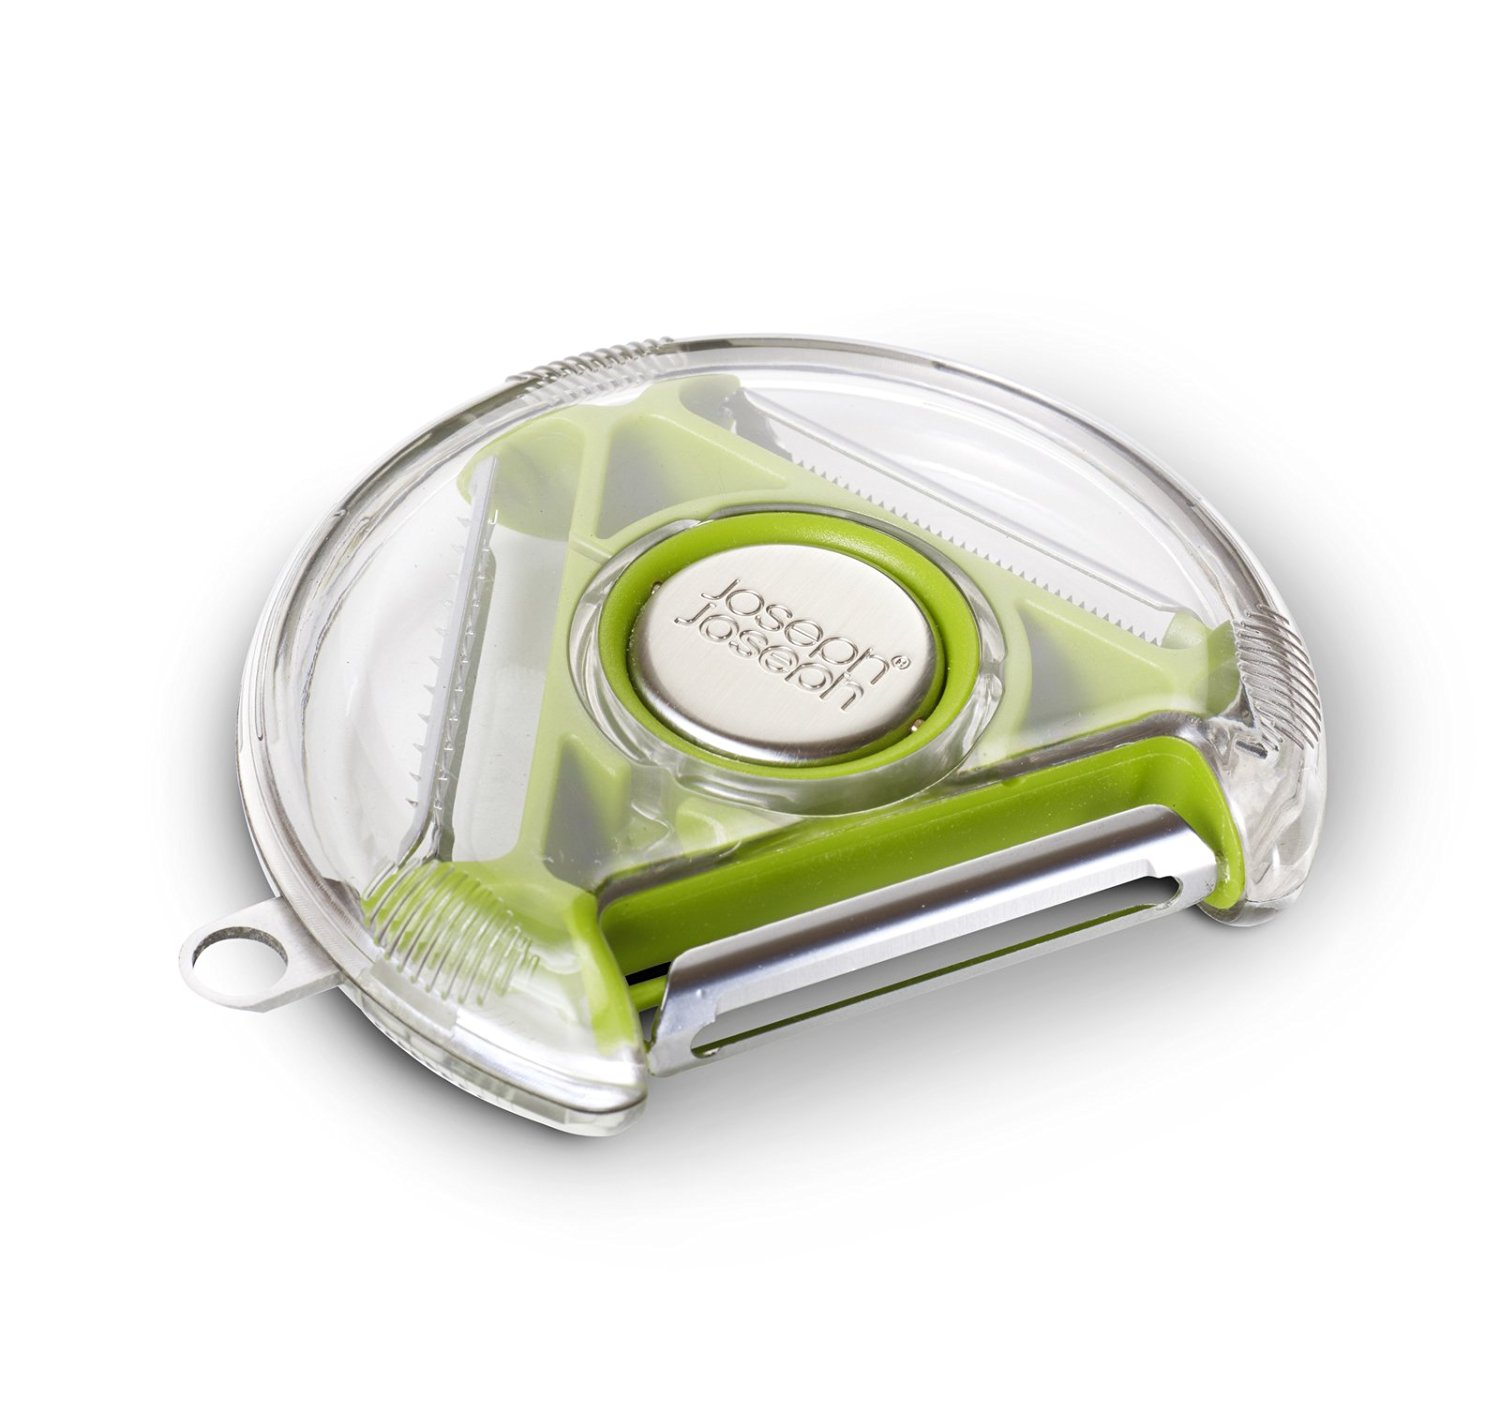 RX_1702_Kitchen Gadgets Rotary peeler